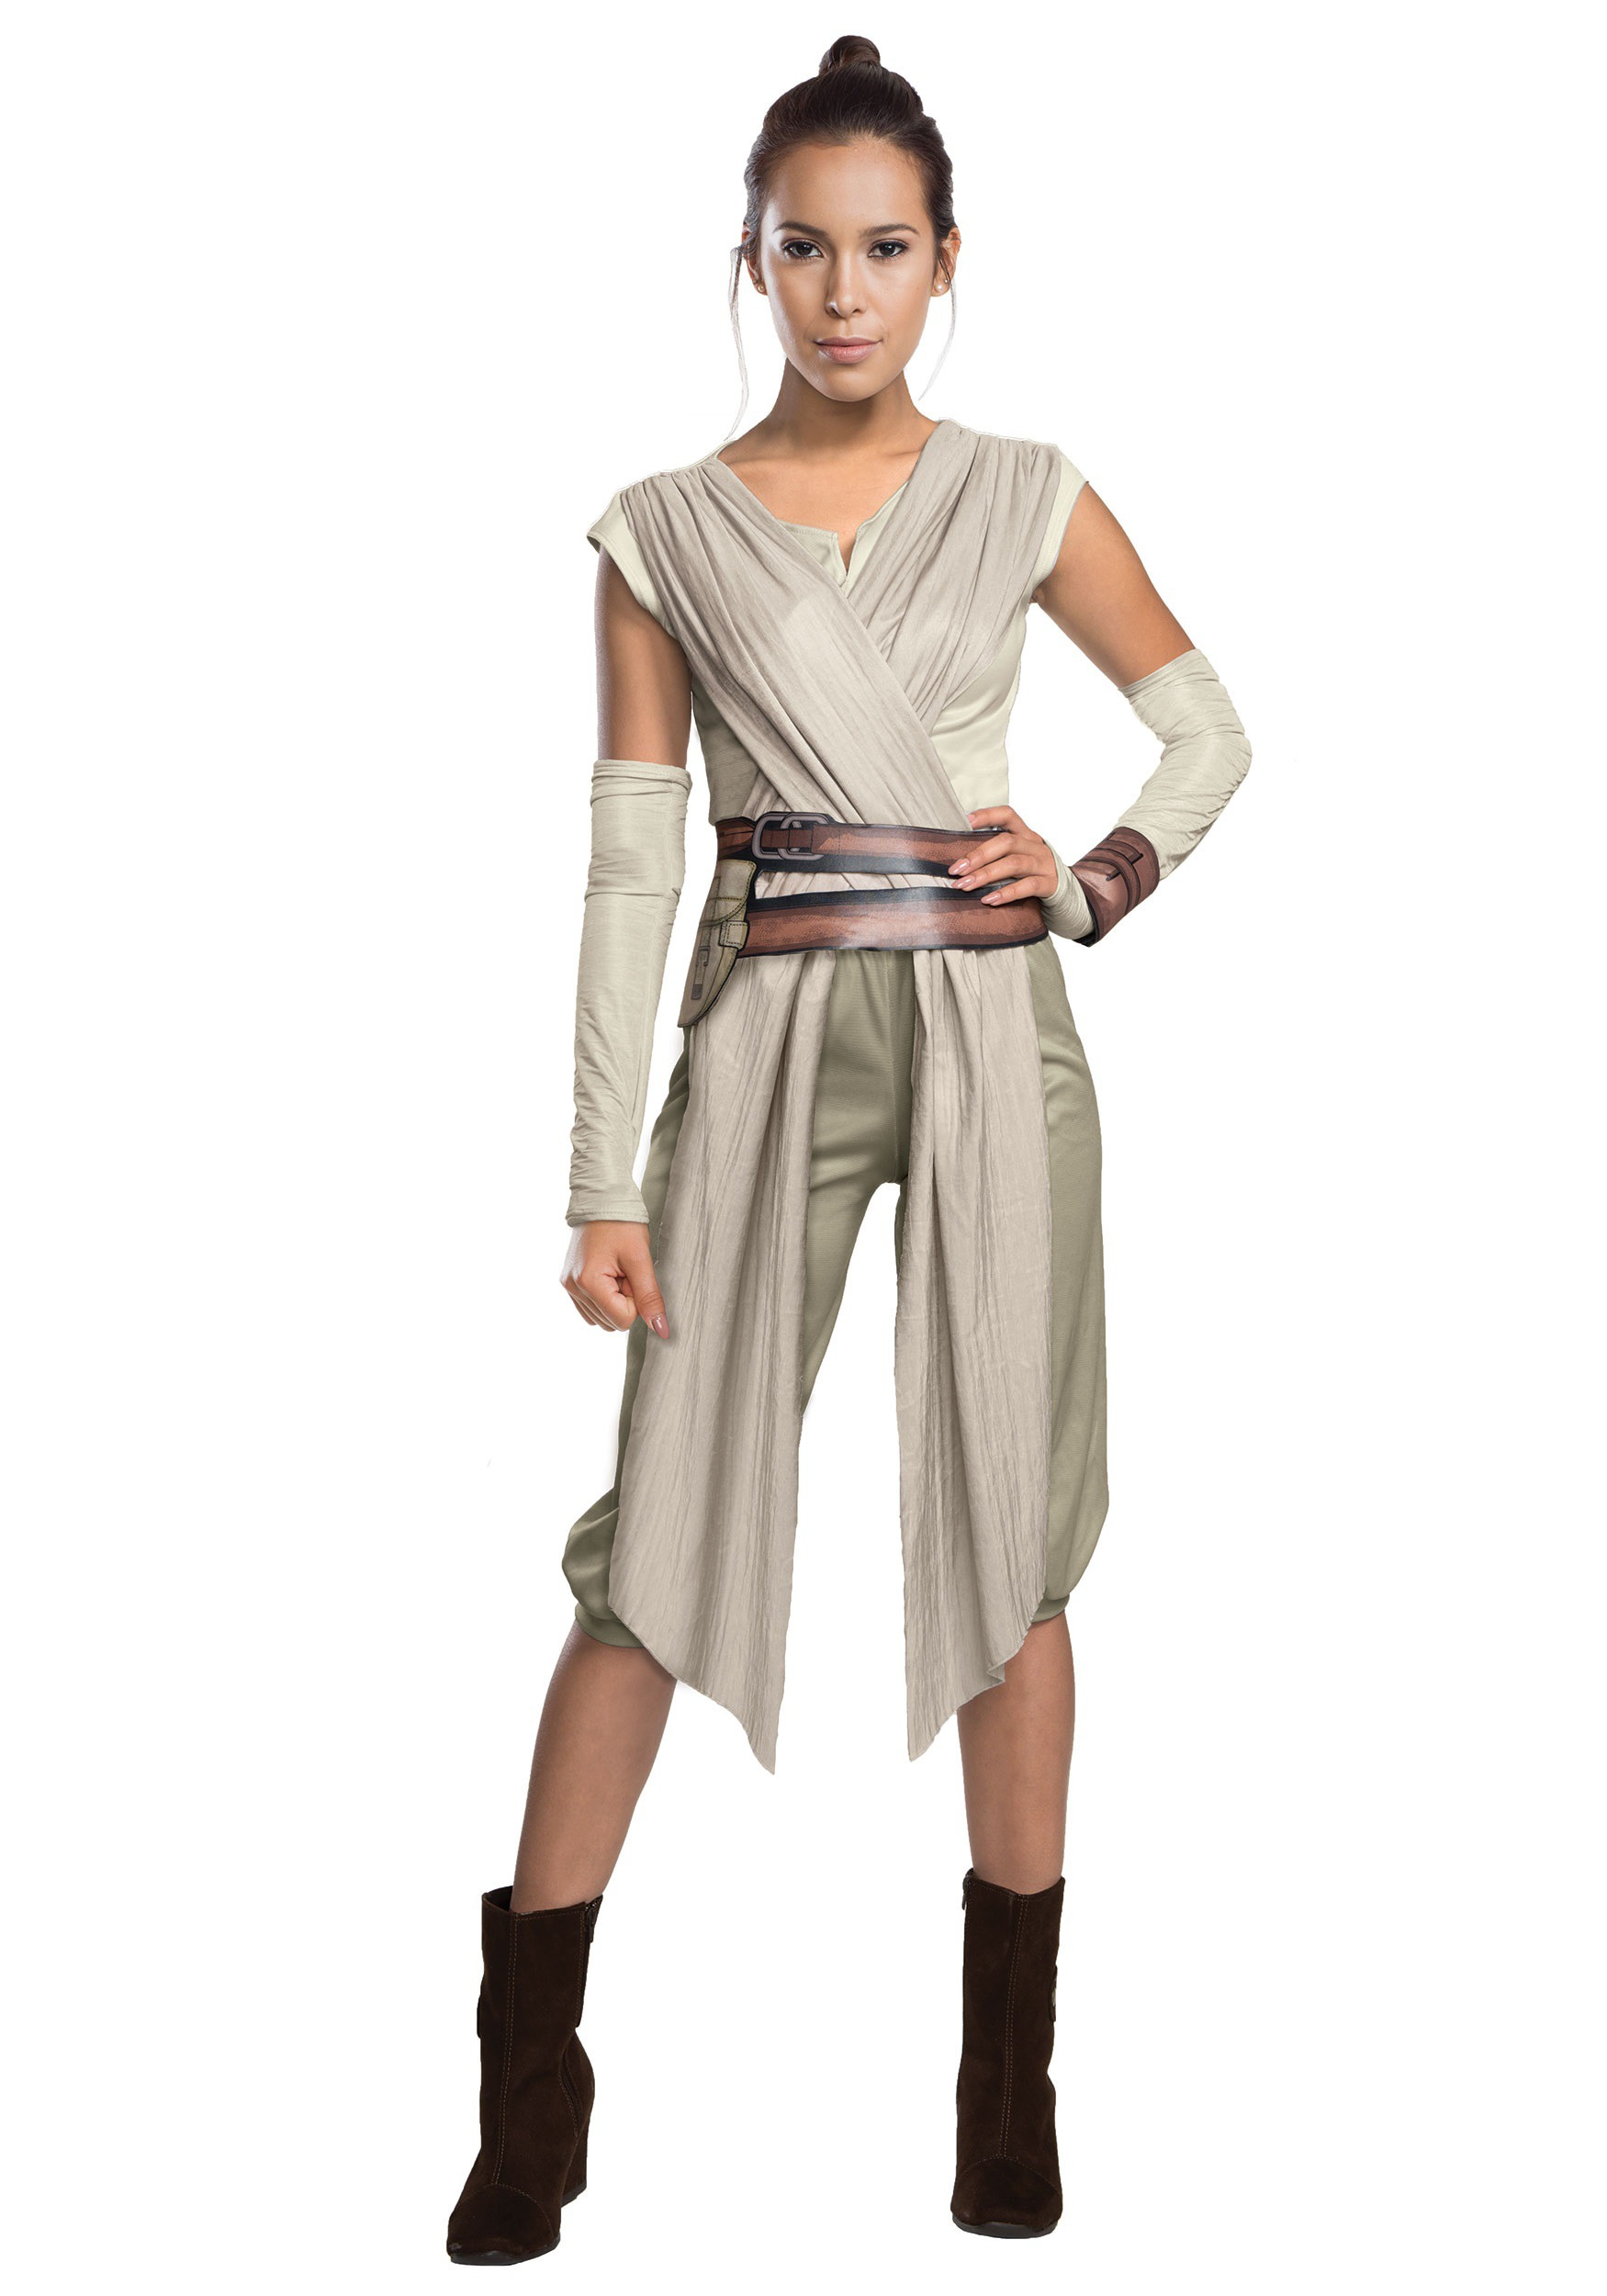 4979070dfb3 Star Wars Costumes for Men, Women, and Kids | Star Wars Outfits